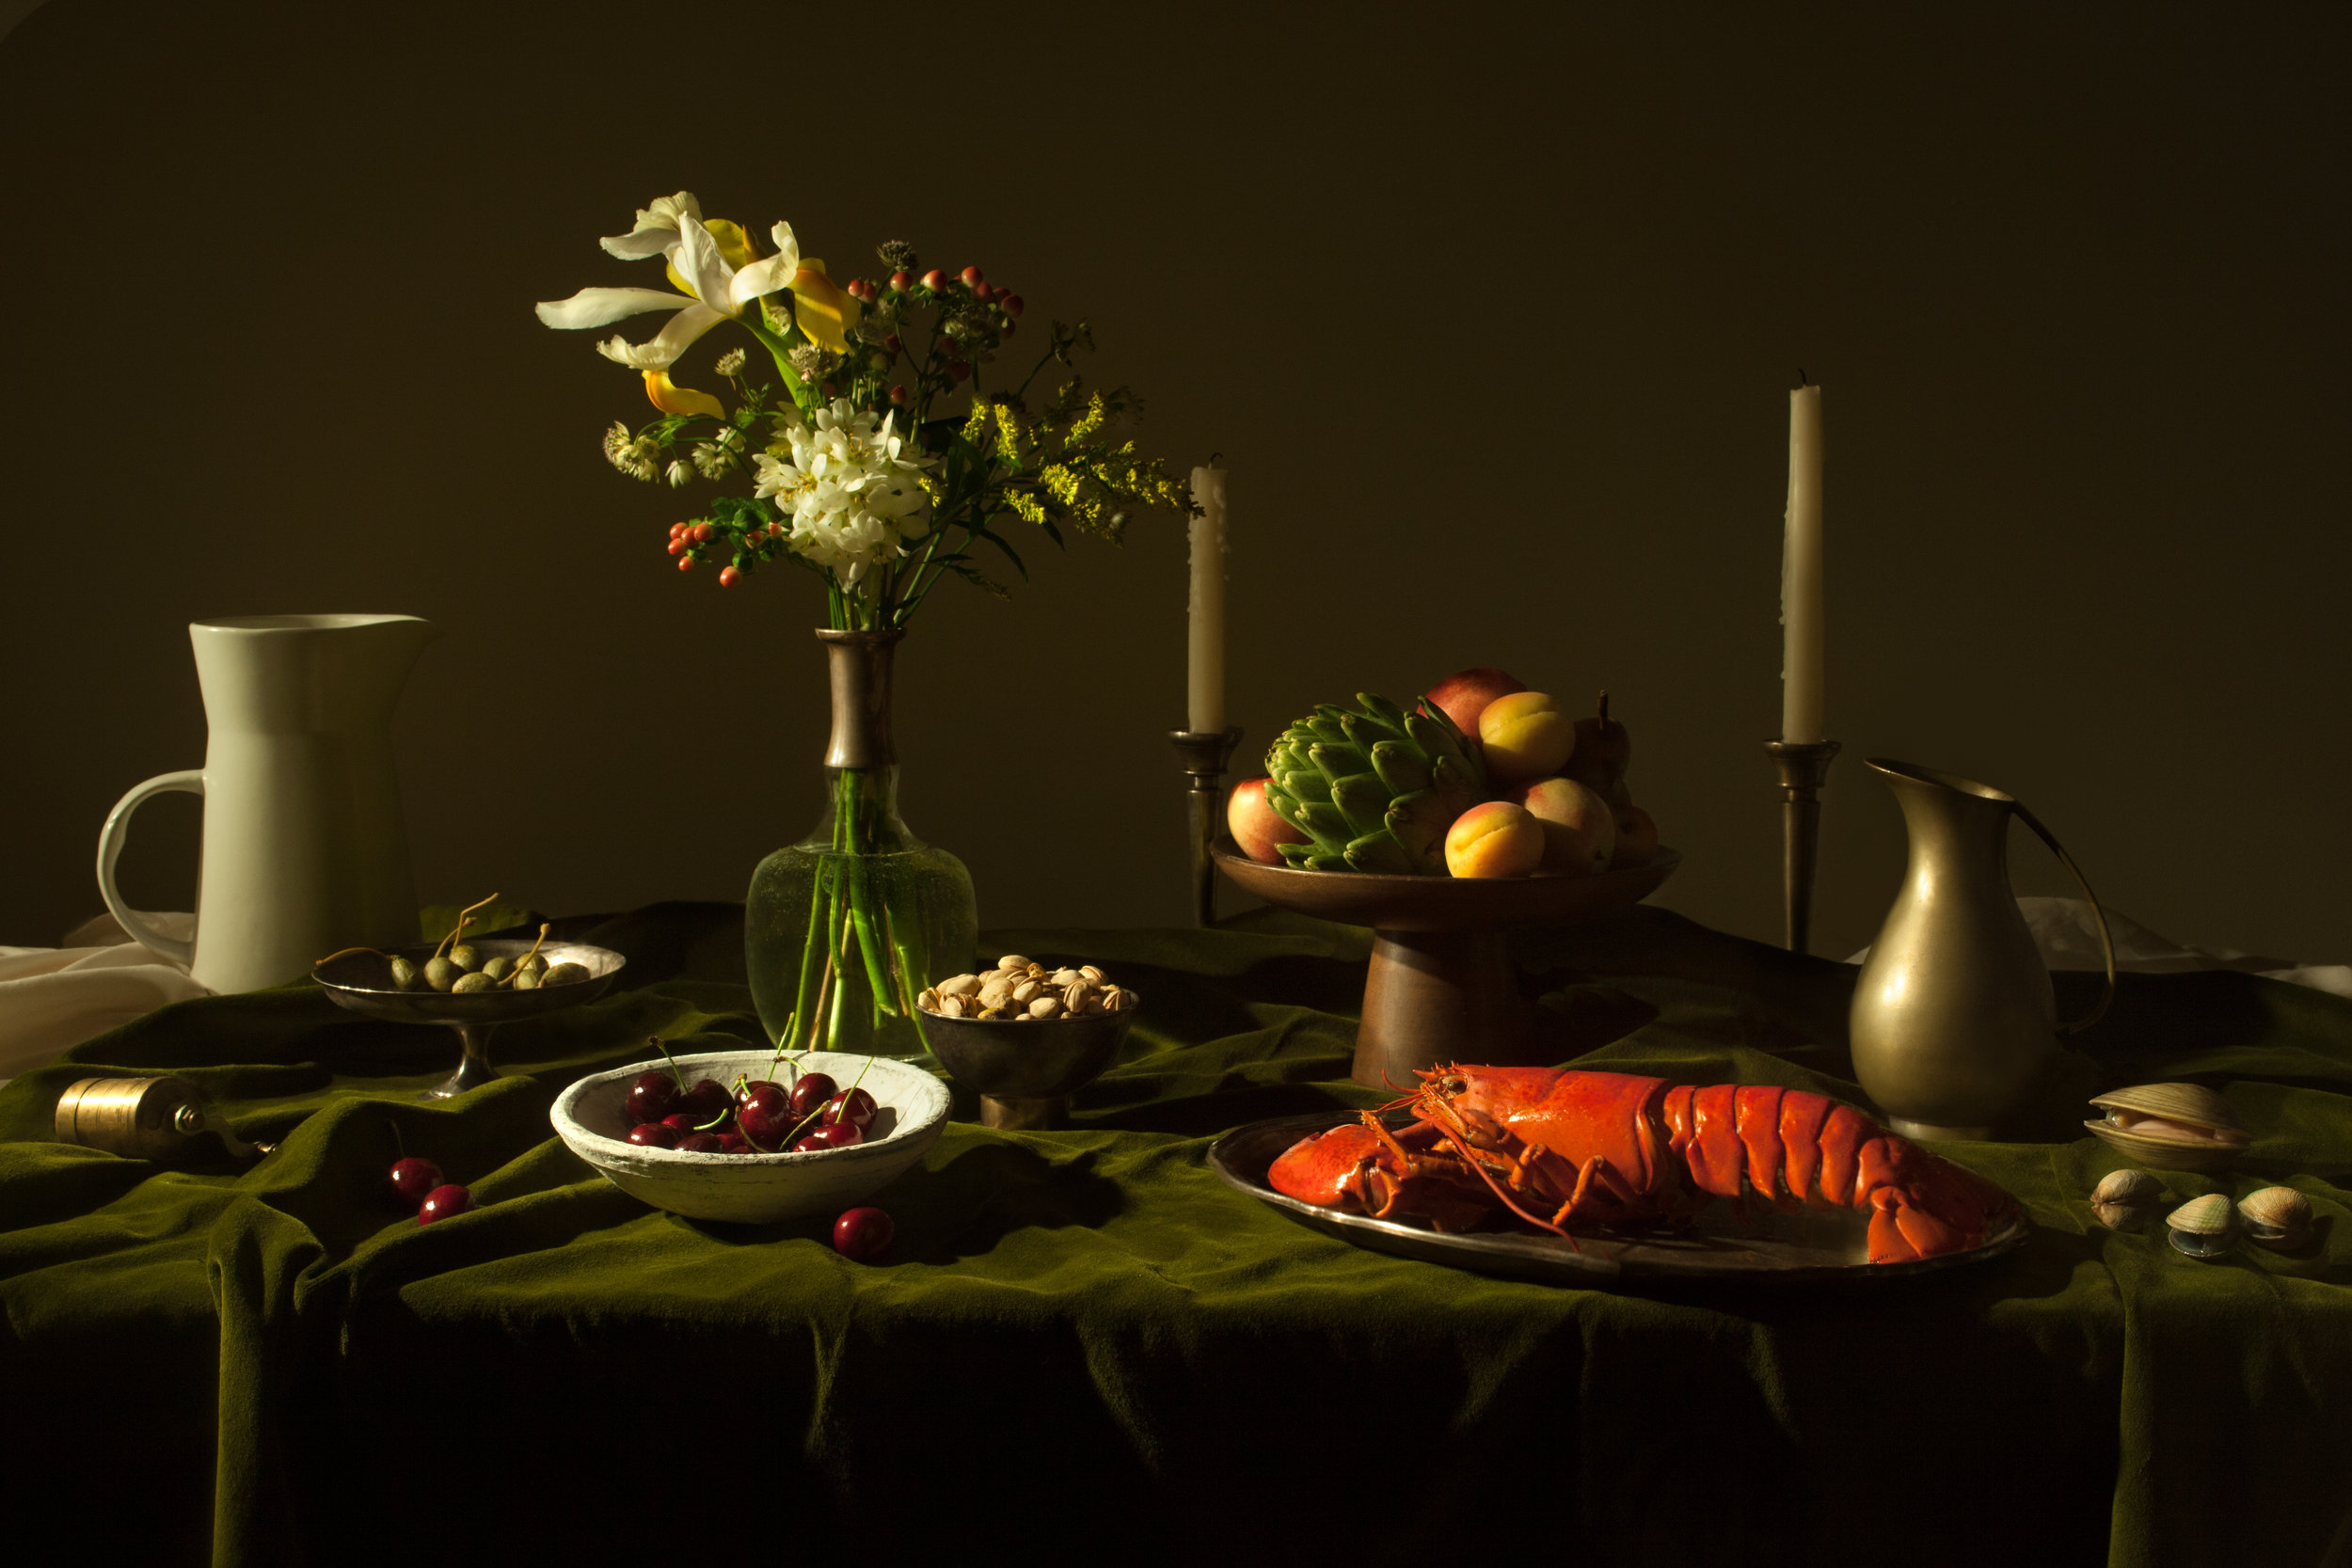 Dutch still life-081-Edit.jpg